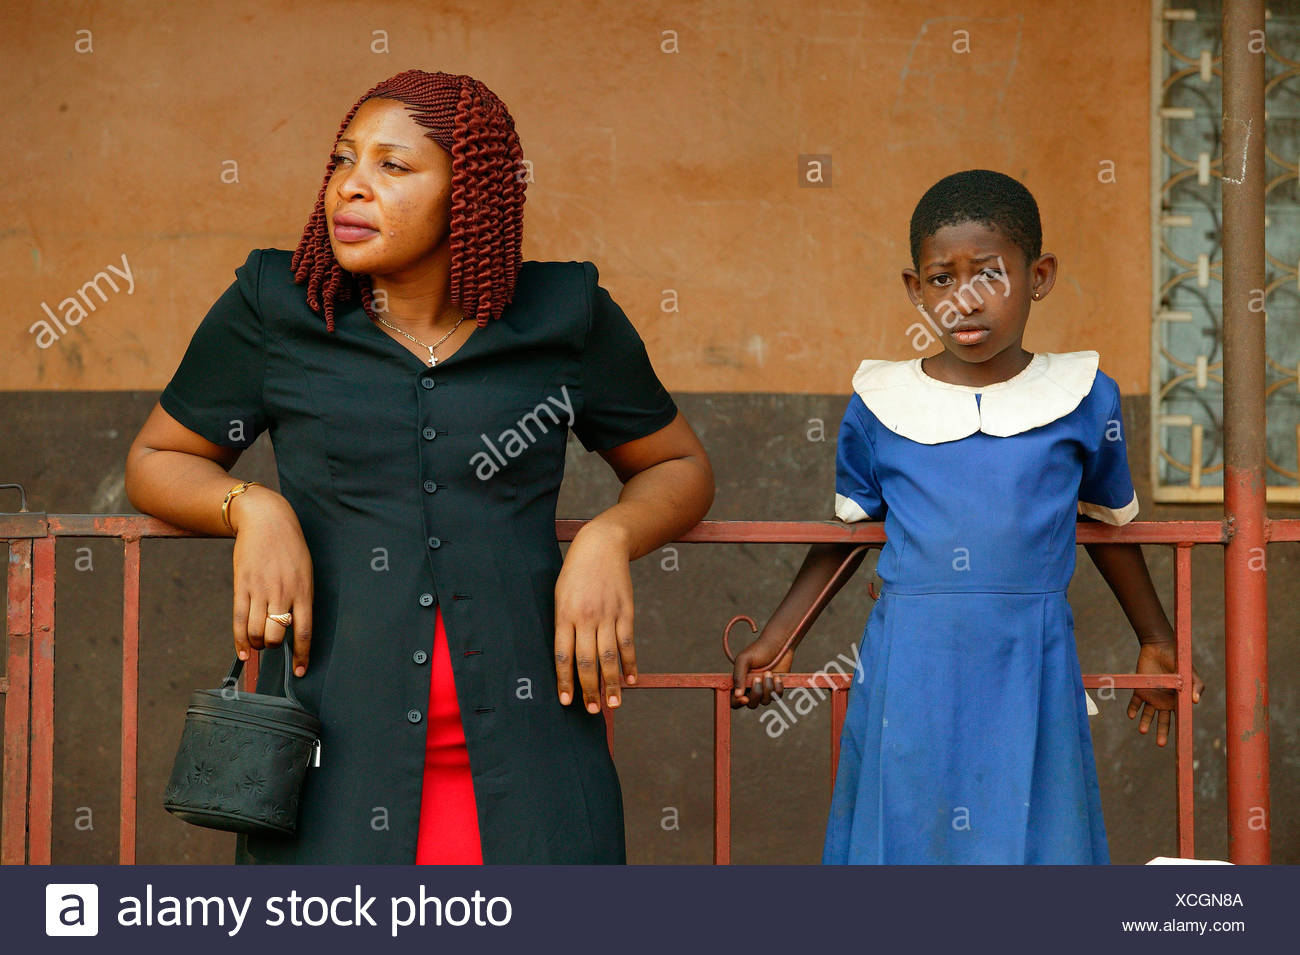 Contemporary African woman standing with a girl in a school uniform, Women's Education Centre, Bamenda, Cameroon, Africa - Stock Image